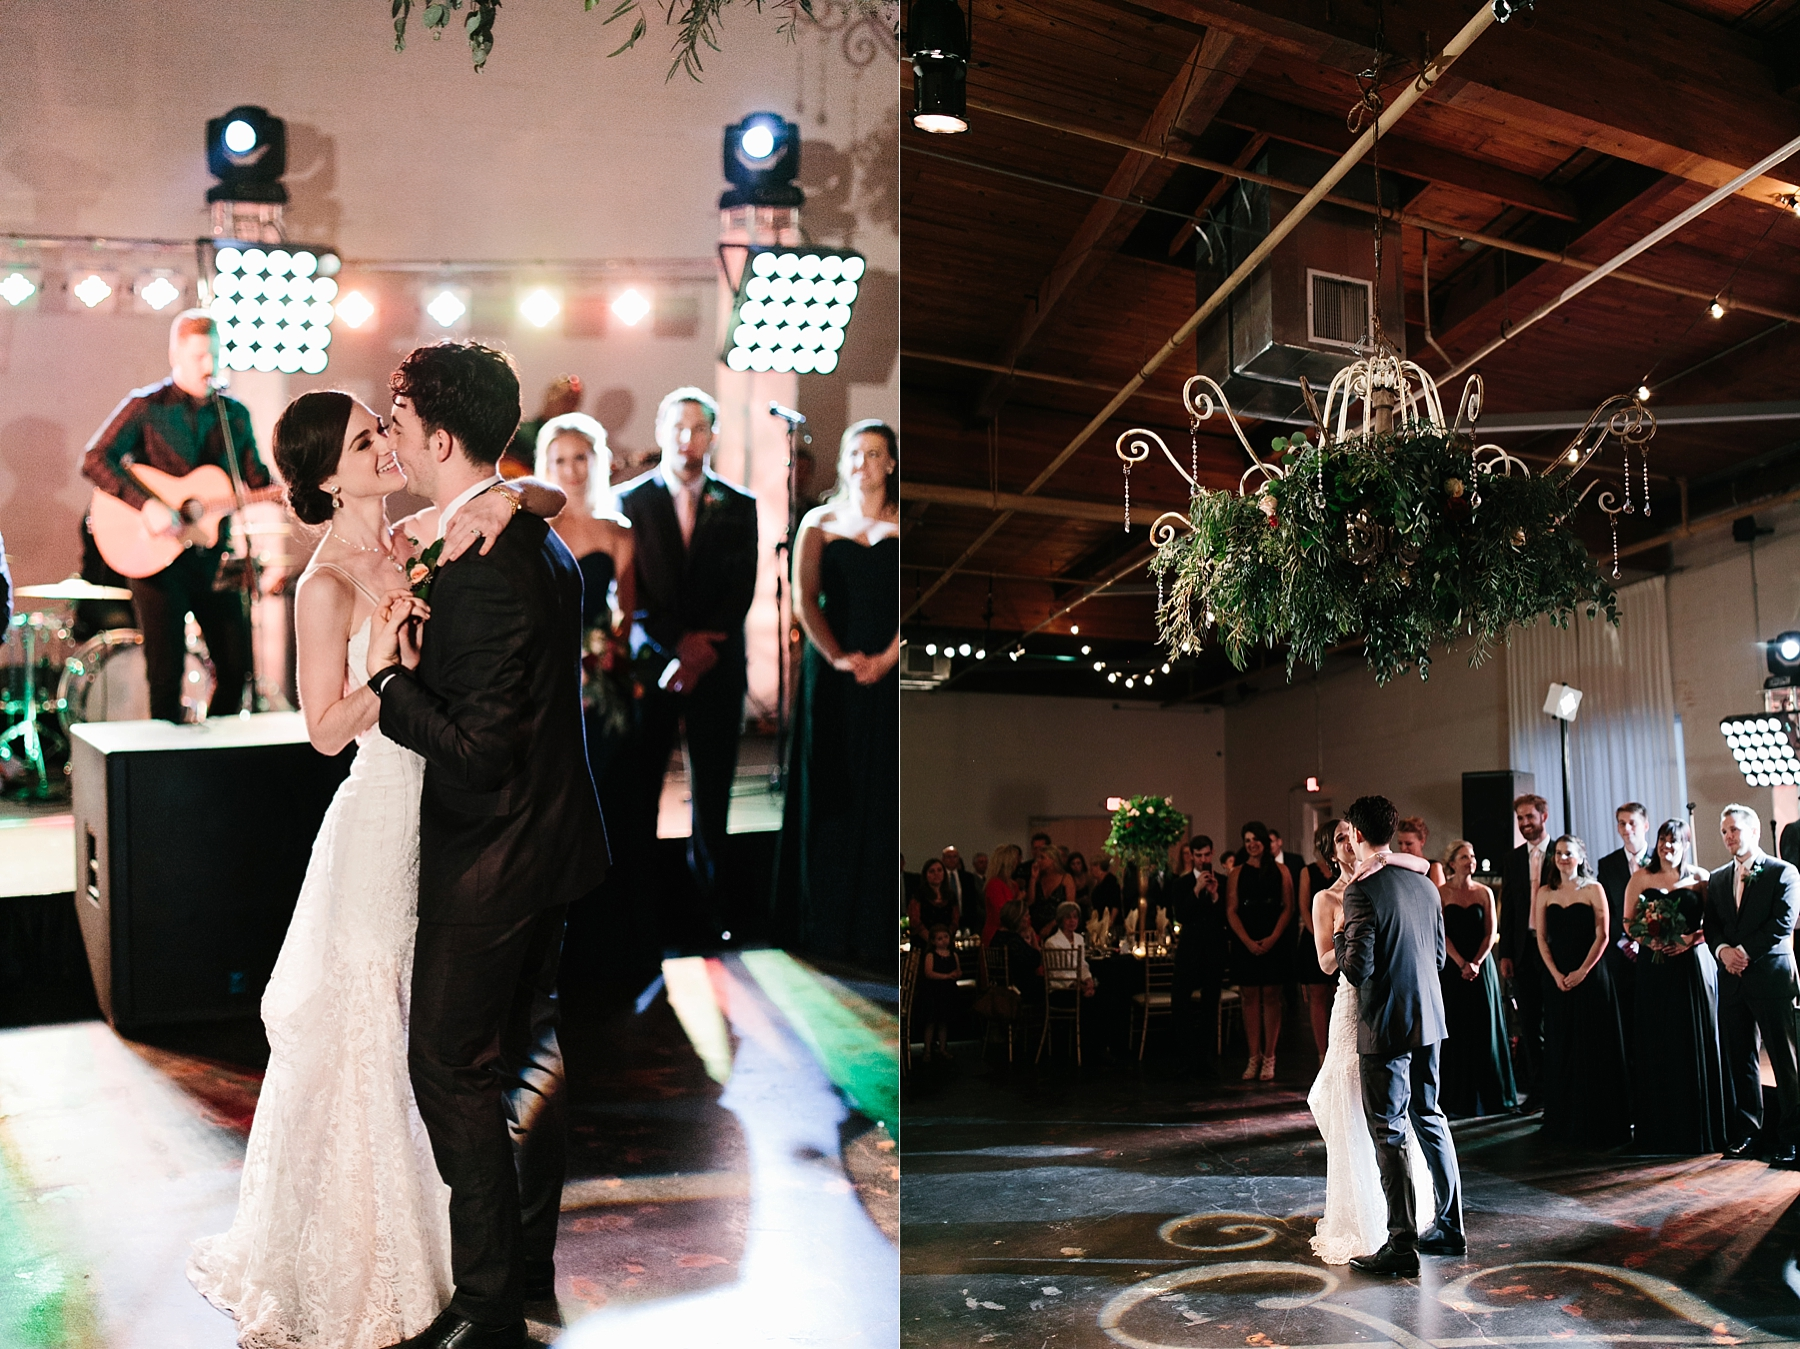 Emily + Caleb _ an elegant, intentional, industrial style wedding with navy + gold accents at 6500 in Dallas, TX by North Texas Wedding Photographer Rachel Meagan Photography _ 135